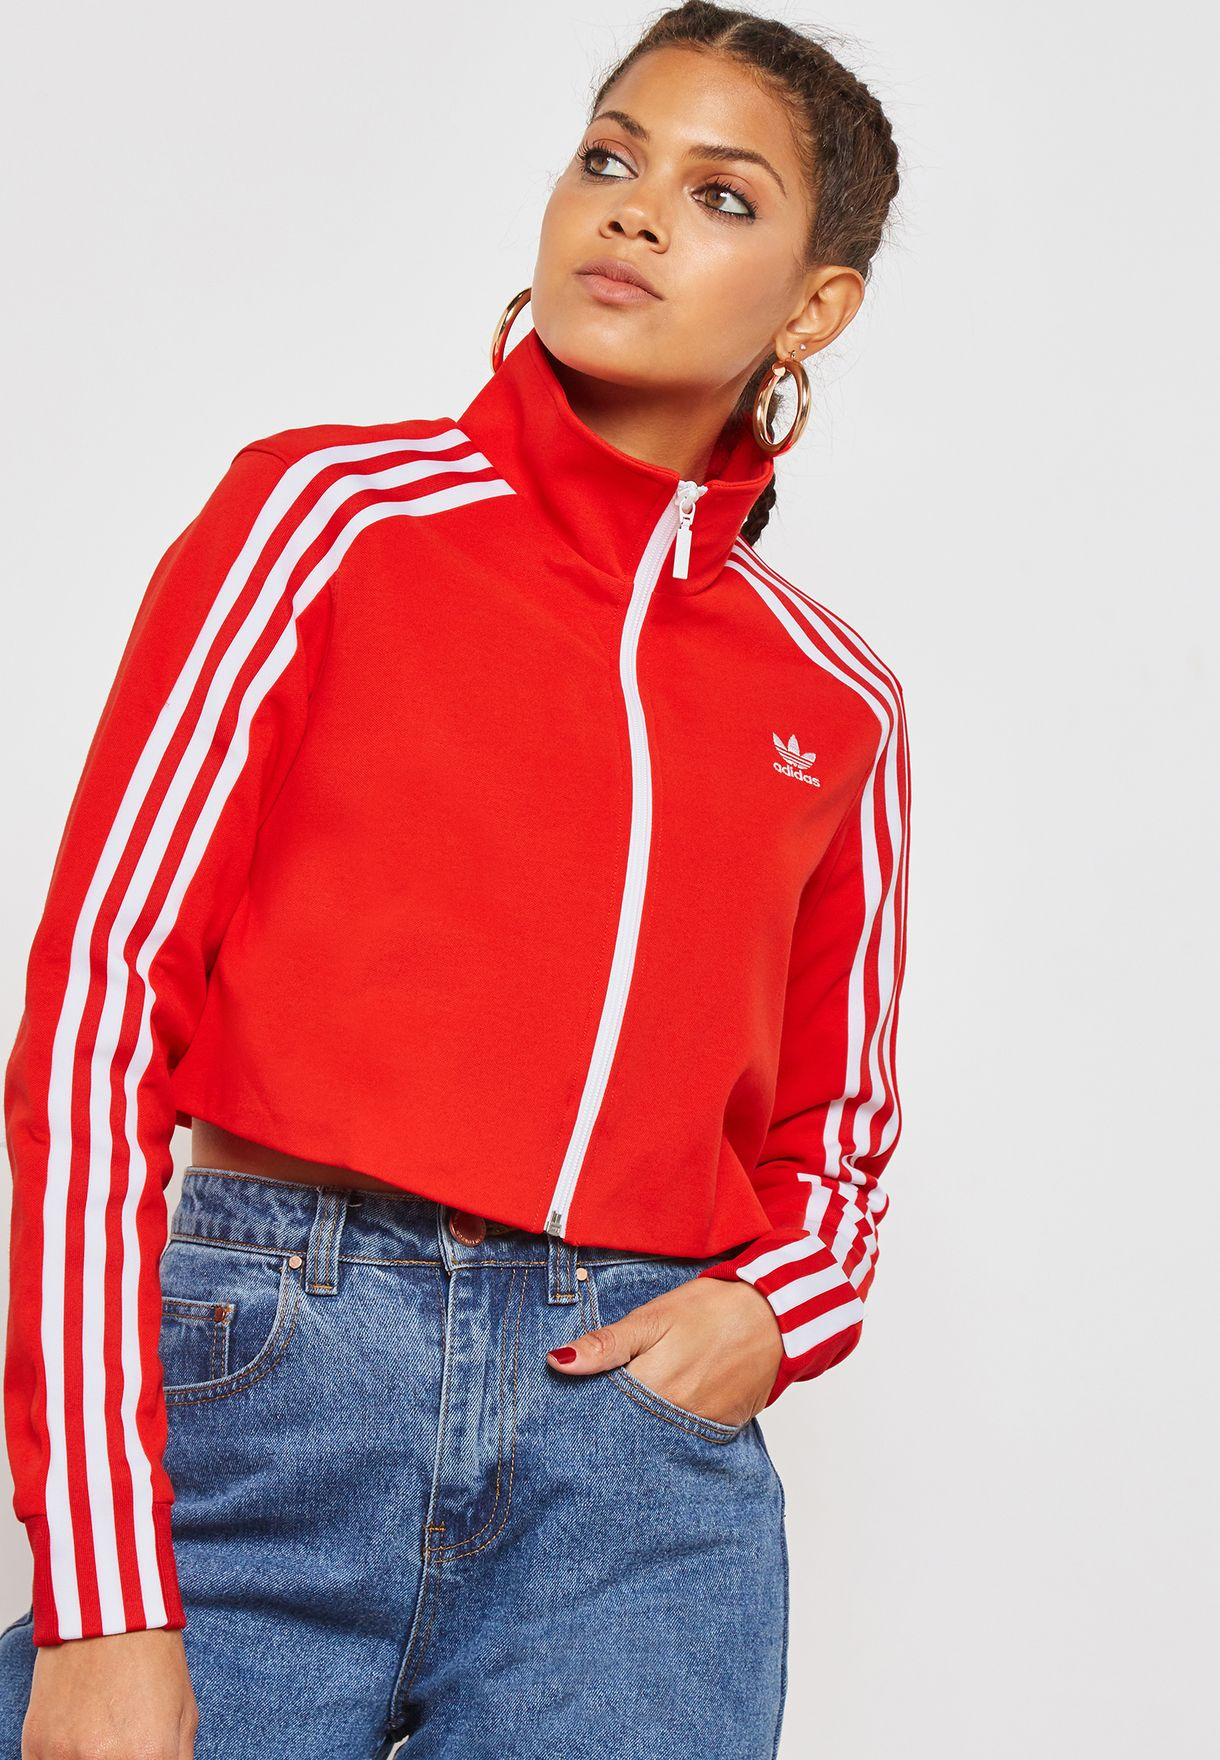 aa63f6fc705c Shop adidas Originals red 3 Stripe Track Jacket DH2726 for Women in UAE -  AD478AT16KDV